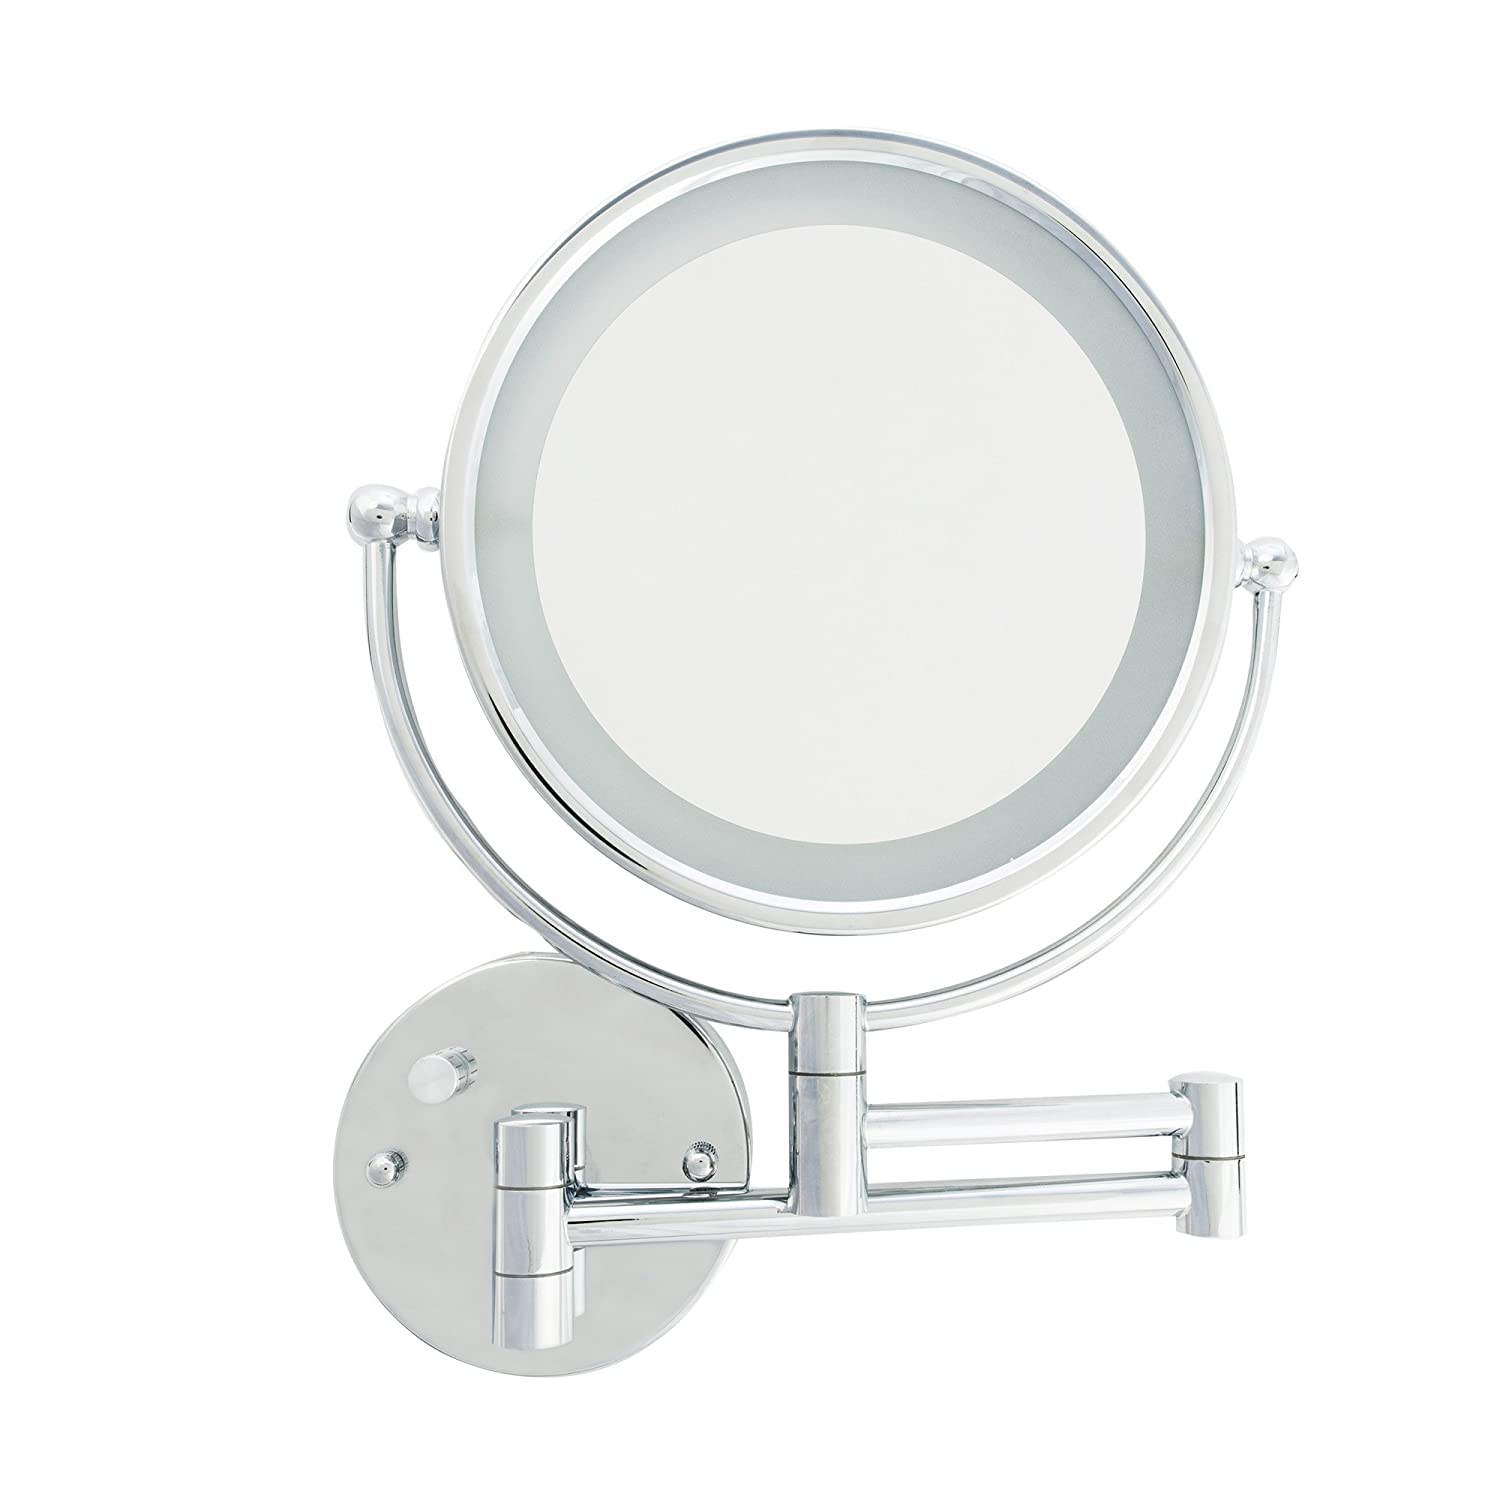 Danielle D158 LED Lighted 10X Makeup Mirror with Wall Mount, Chrome Upper Canada Soap